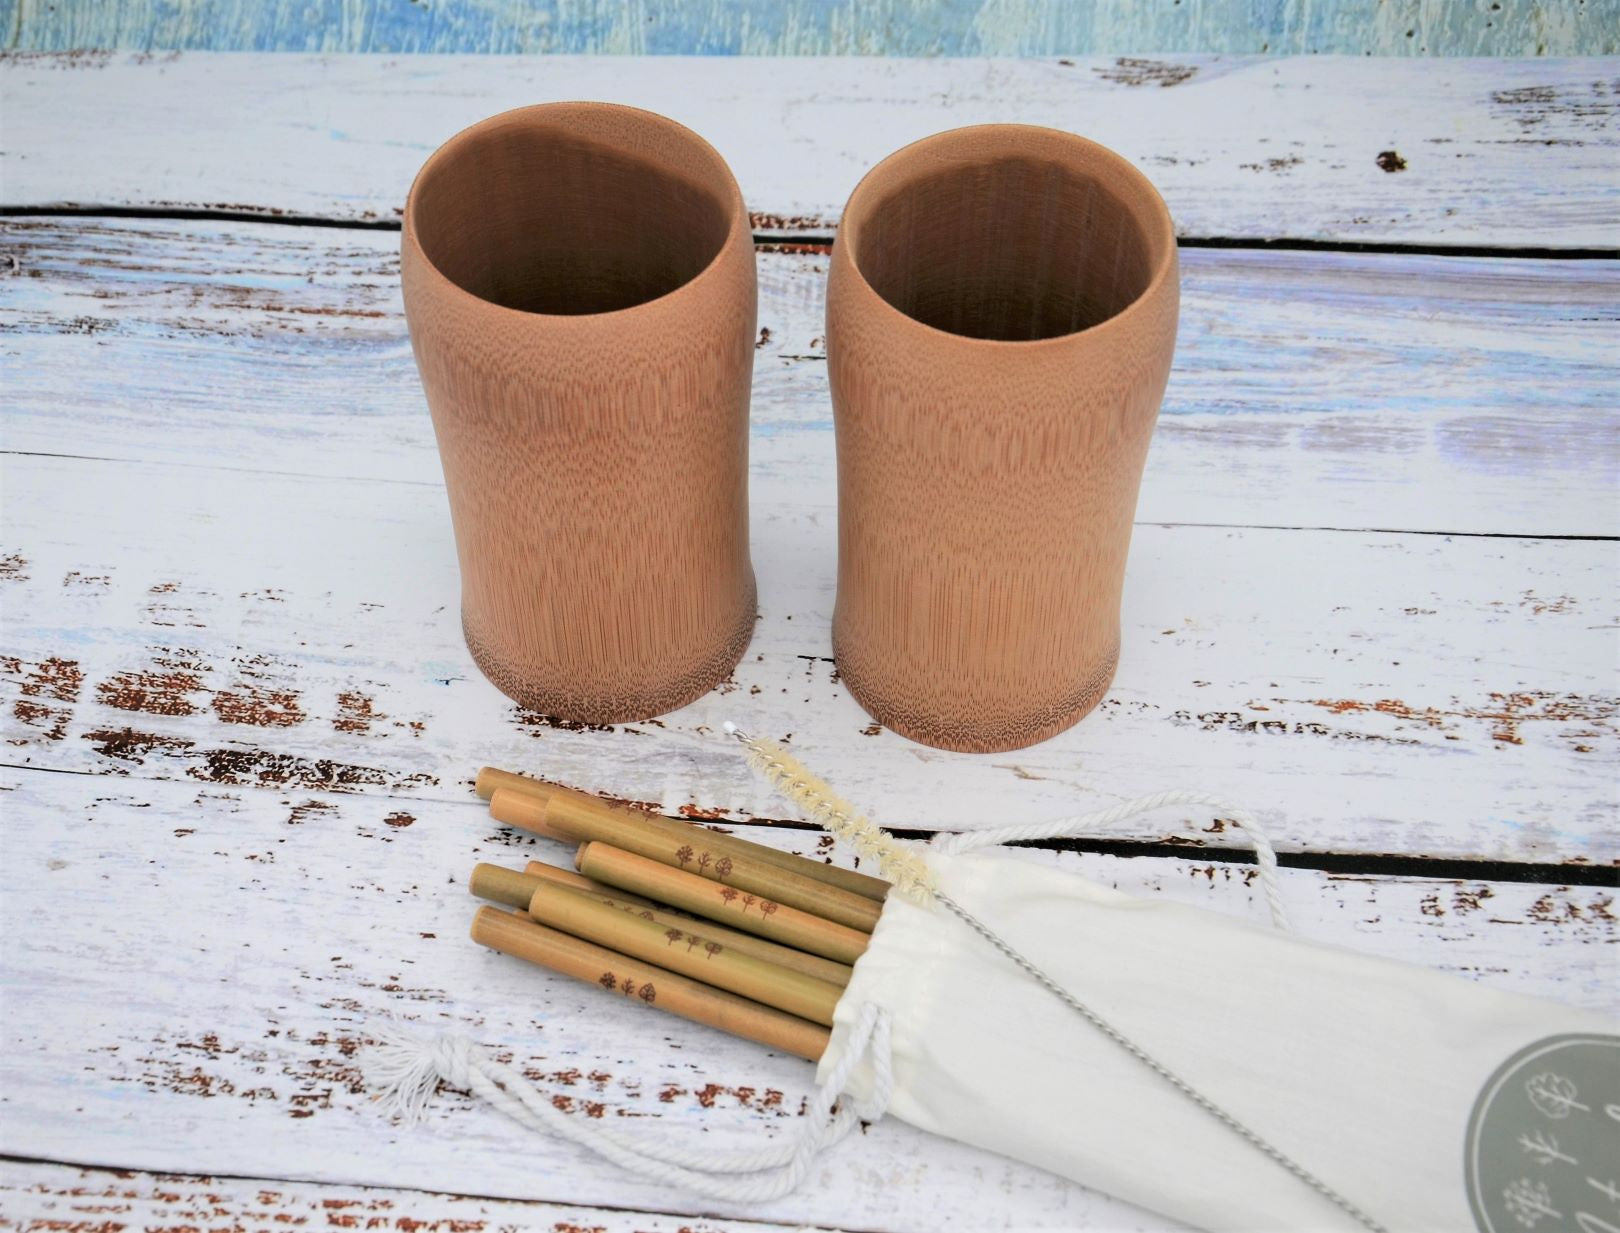 Bamboo cups and straws in canvas bag with sisal cleaner laid on top of bag